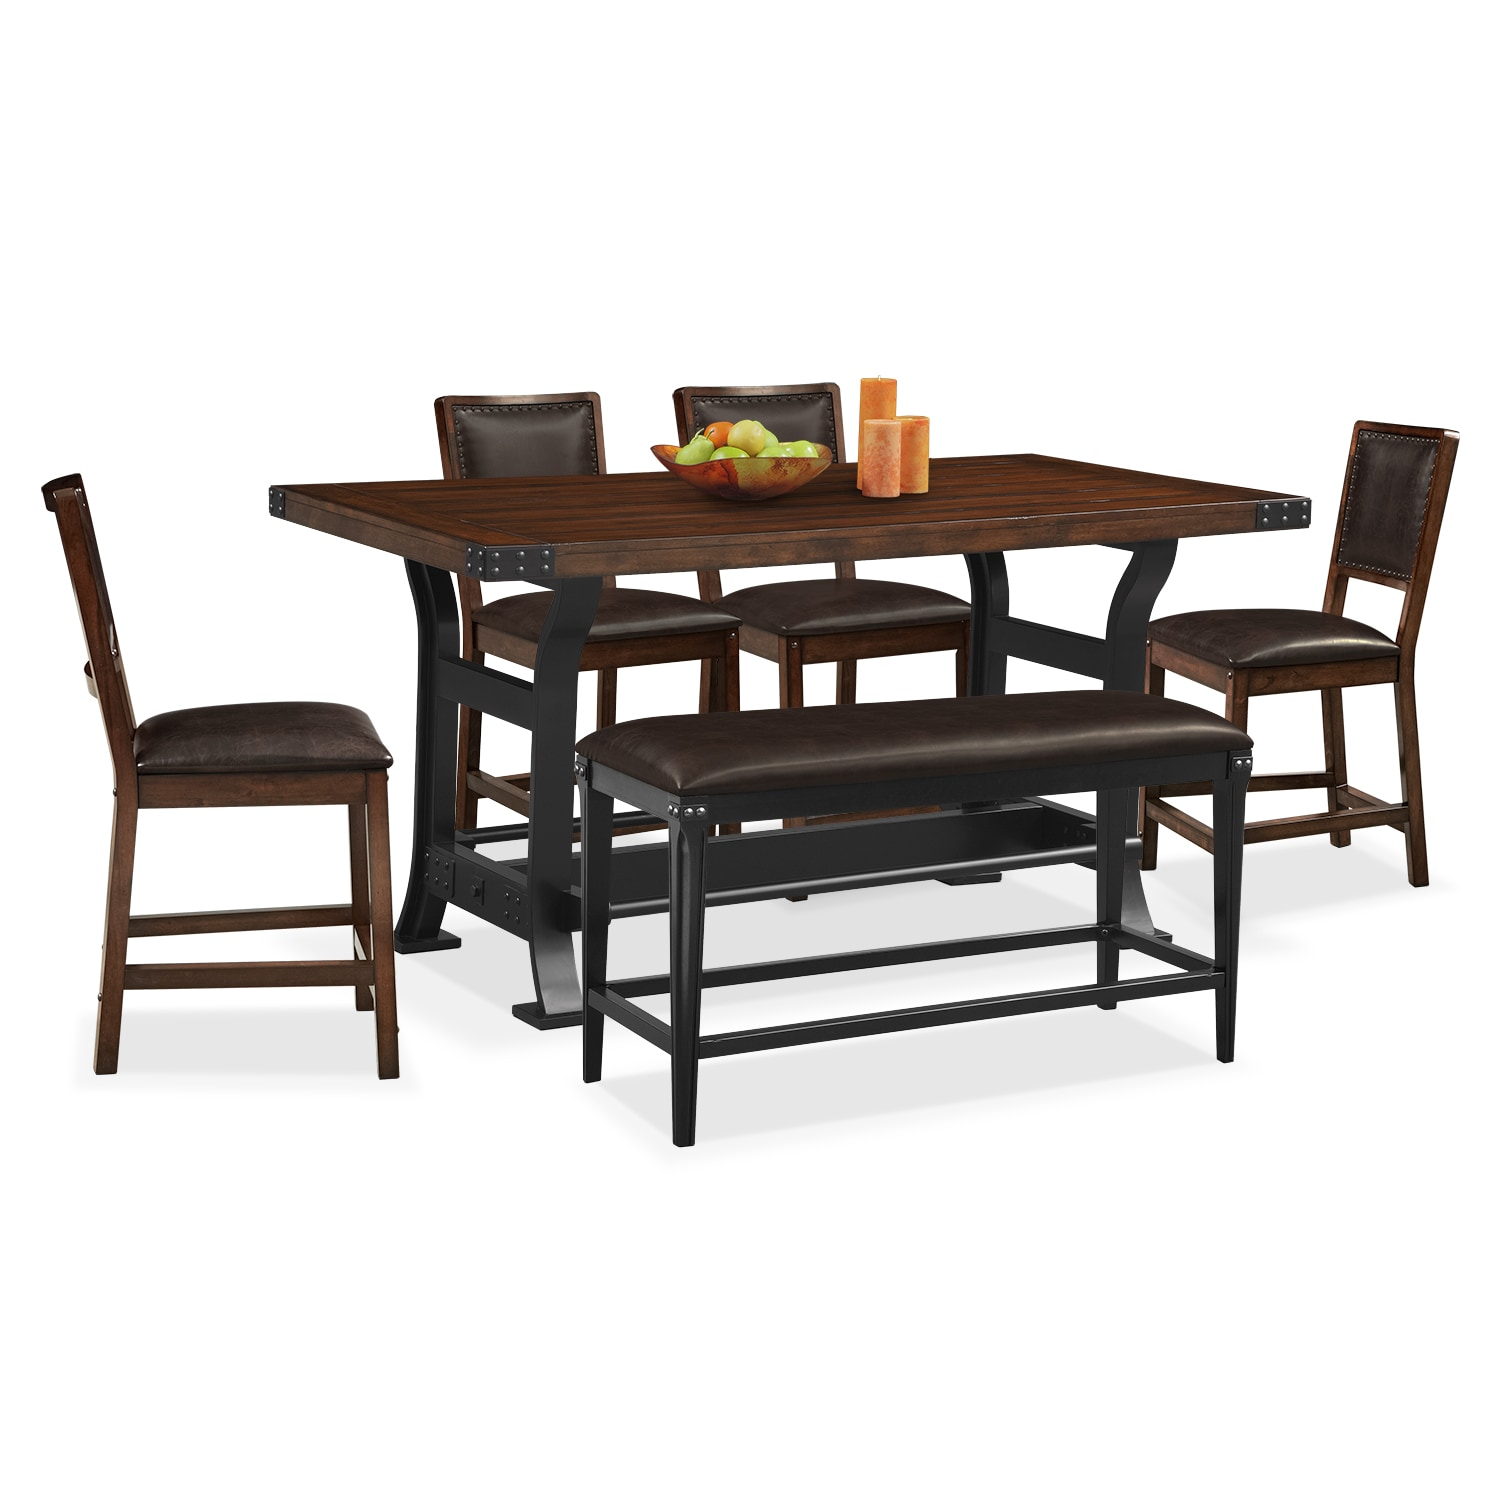 Newcastle Counter Height Table 4 Chairs And Bench